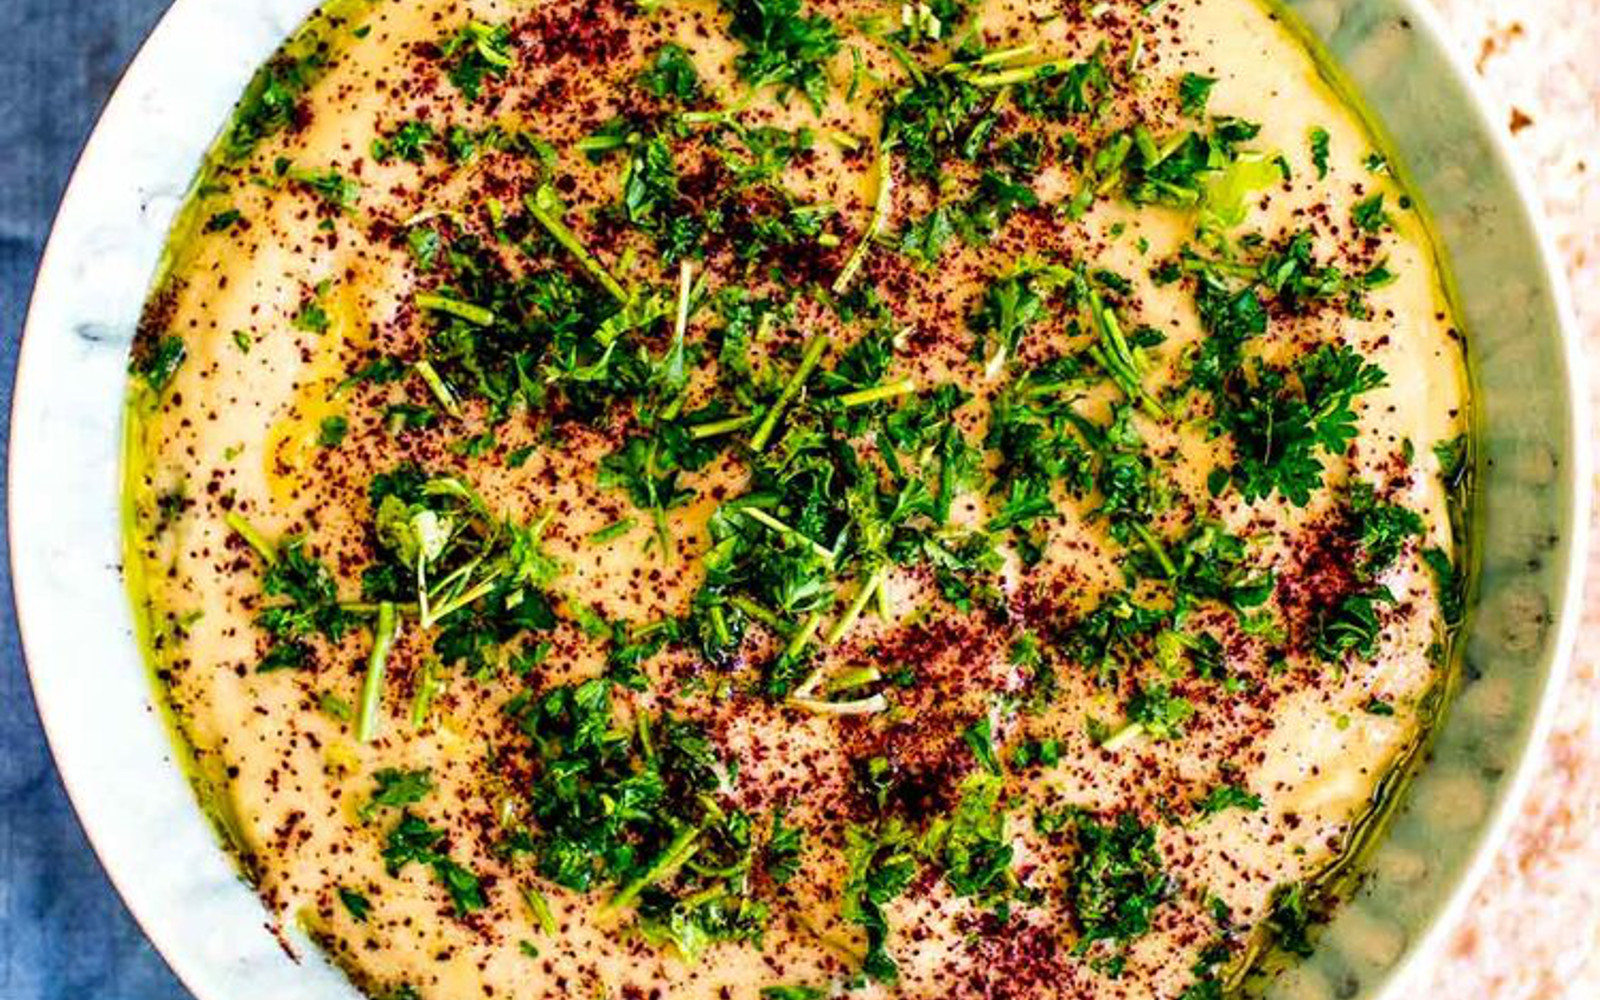 Vegan Gluten-Free Roasted Eggplant Dip with parsley and sumac